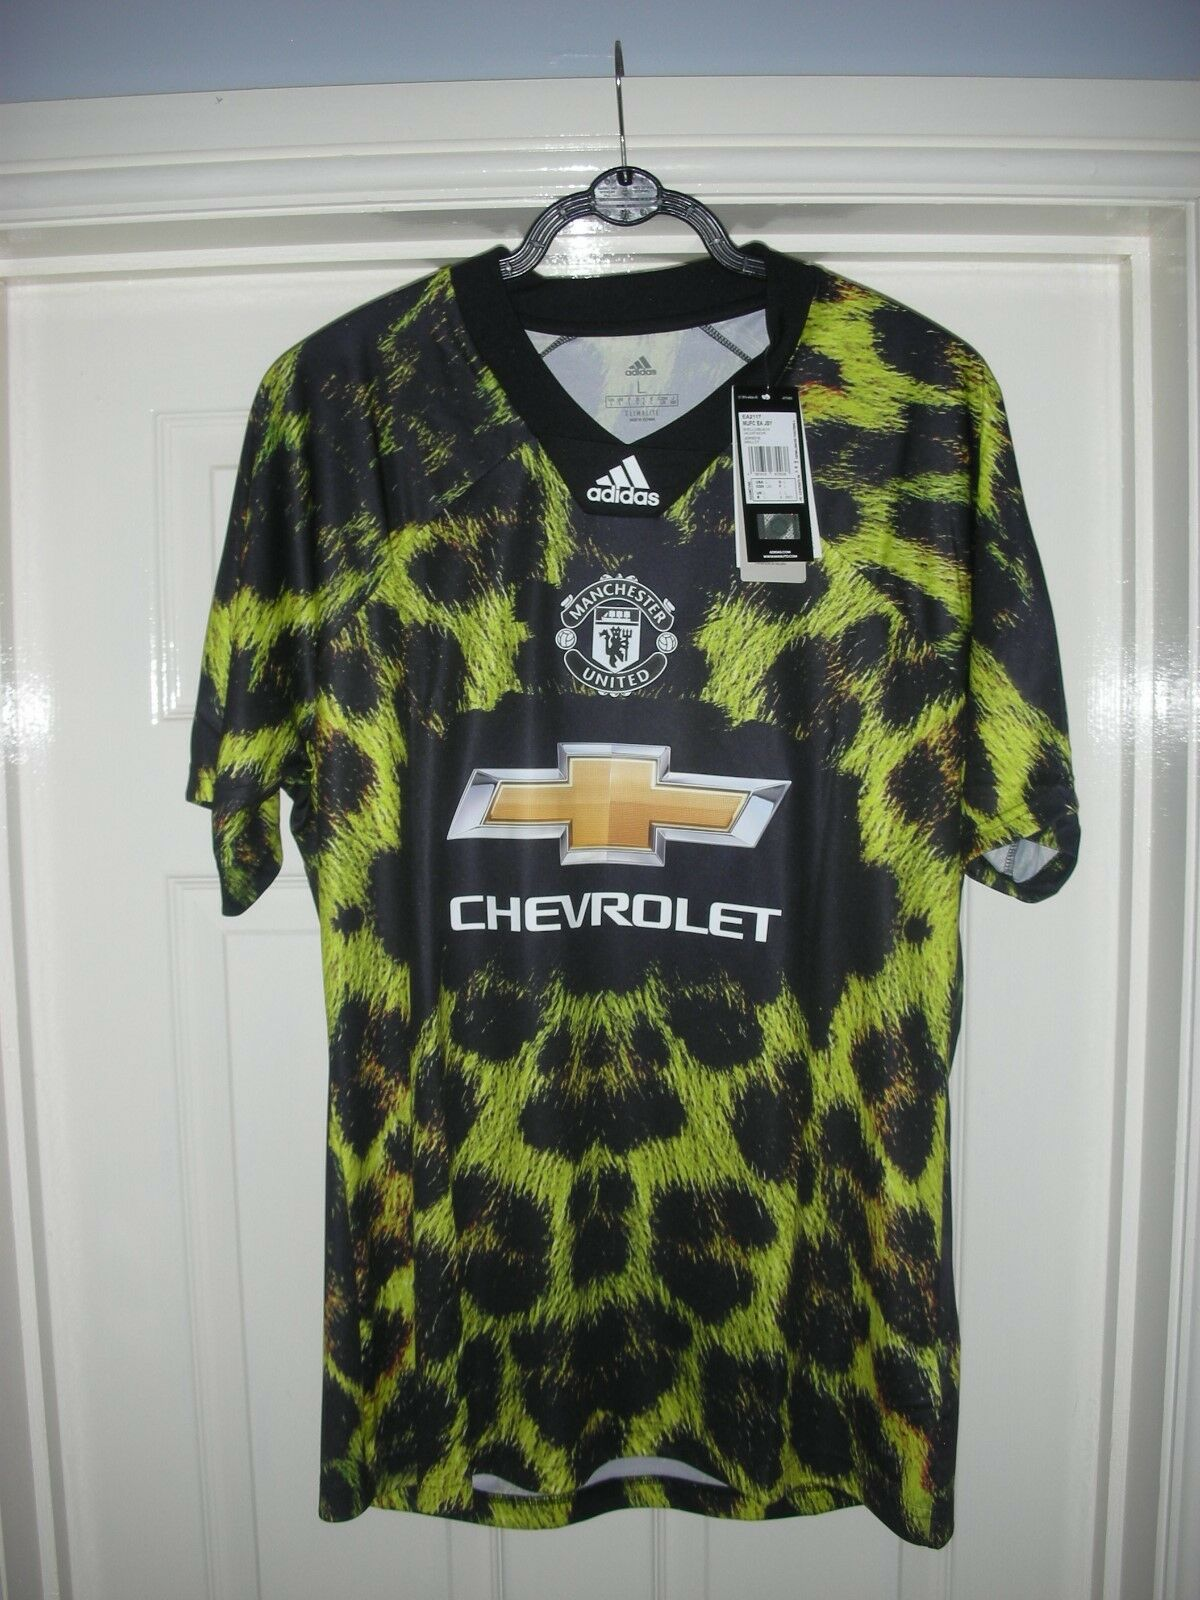 Manchester United EA Sports Adidas Shirt, Groot